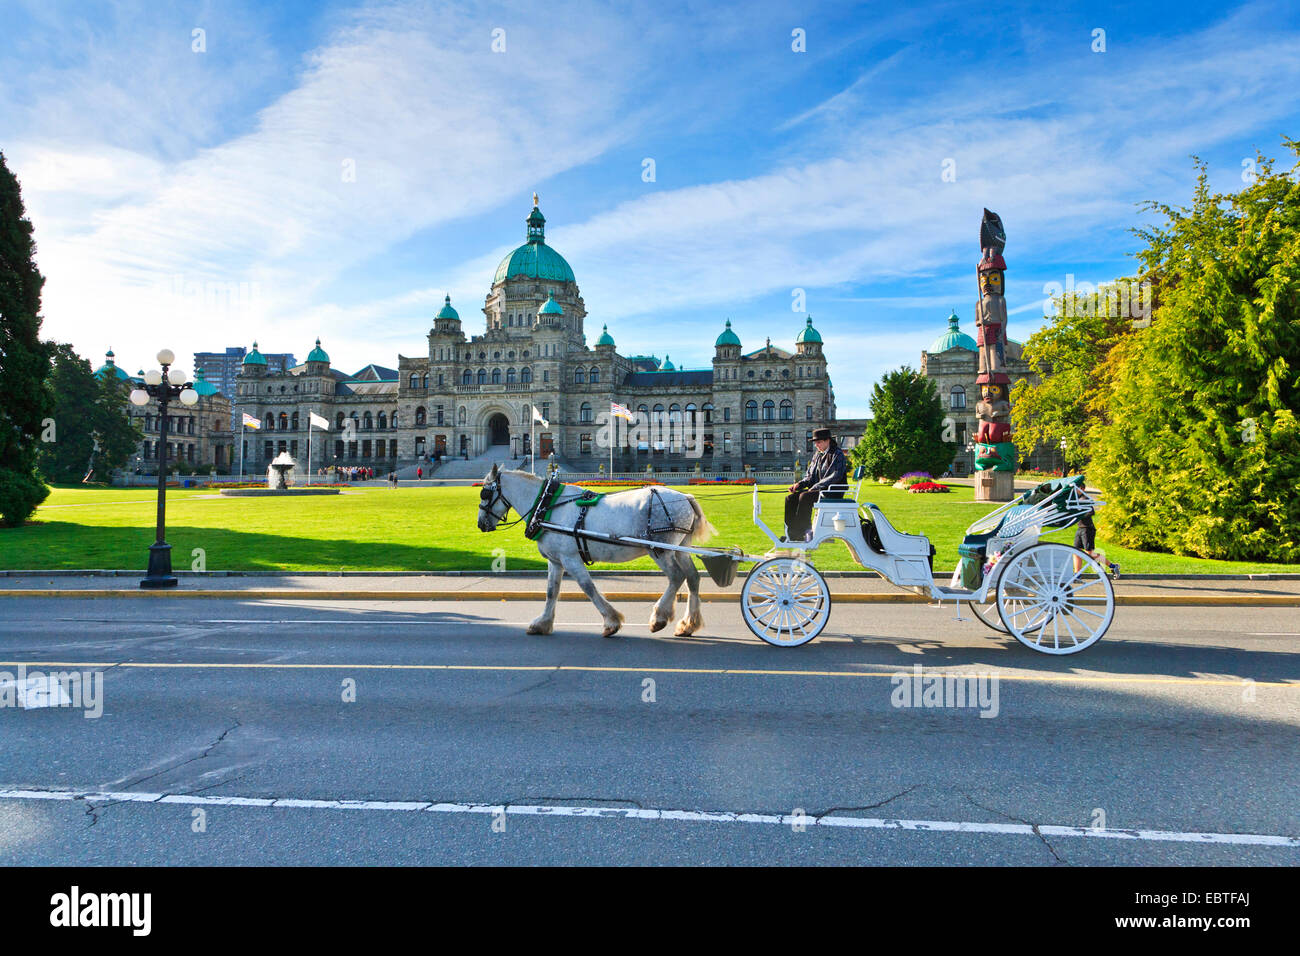 Horse carriage in front of the Parliament Building, Canada, British Columbia, Vancouver Island, Victoria - Stock Image